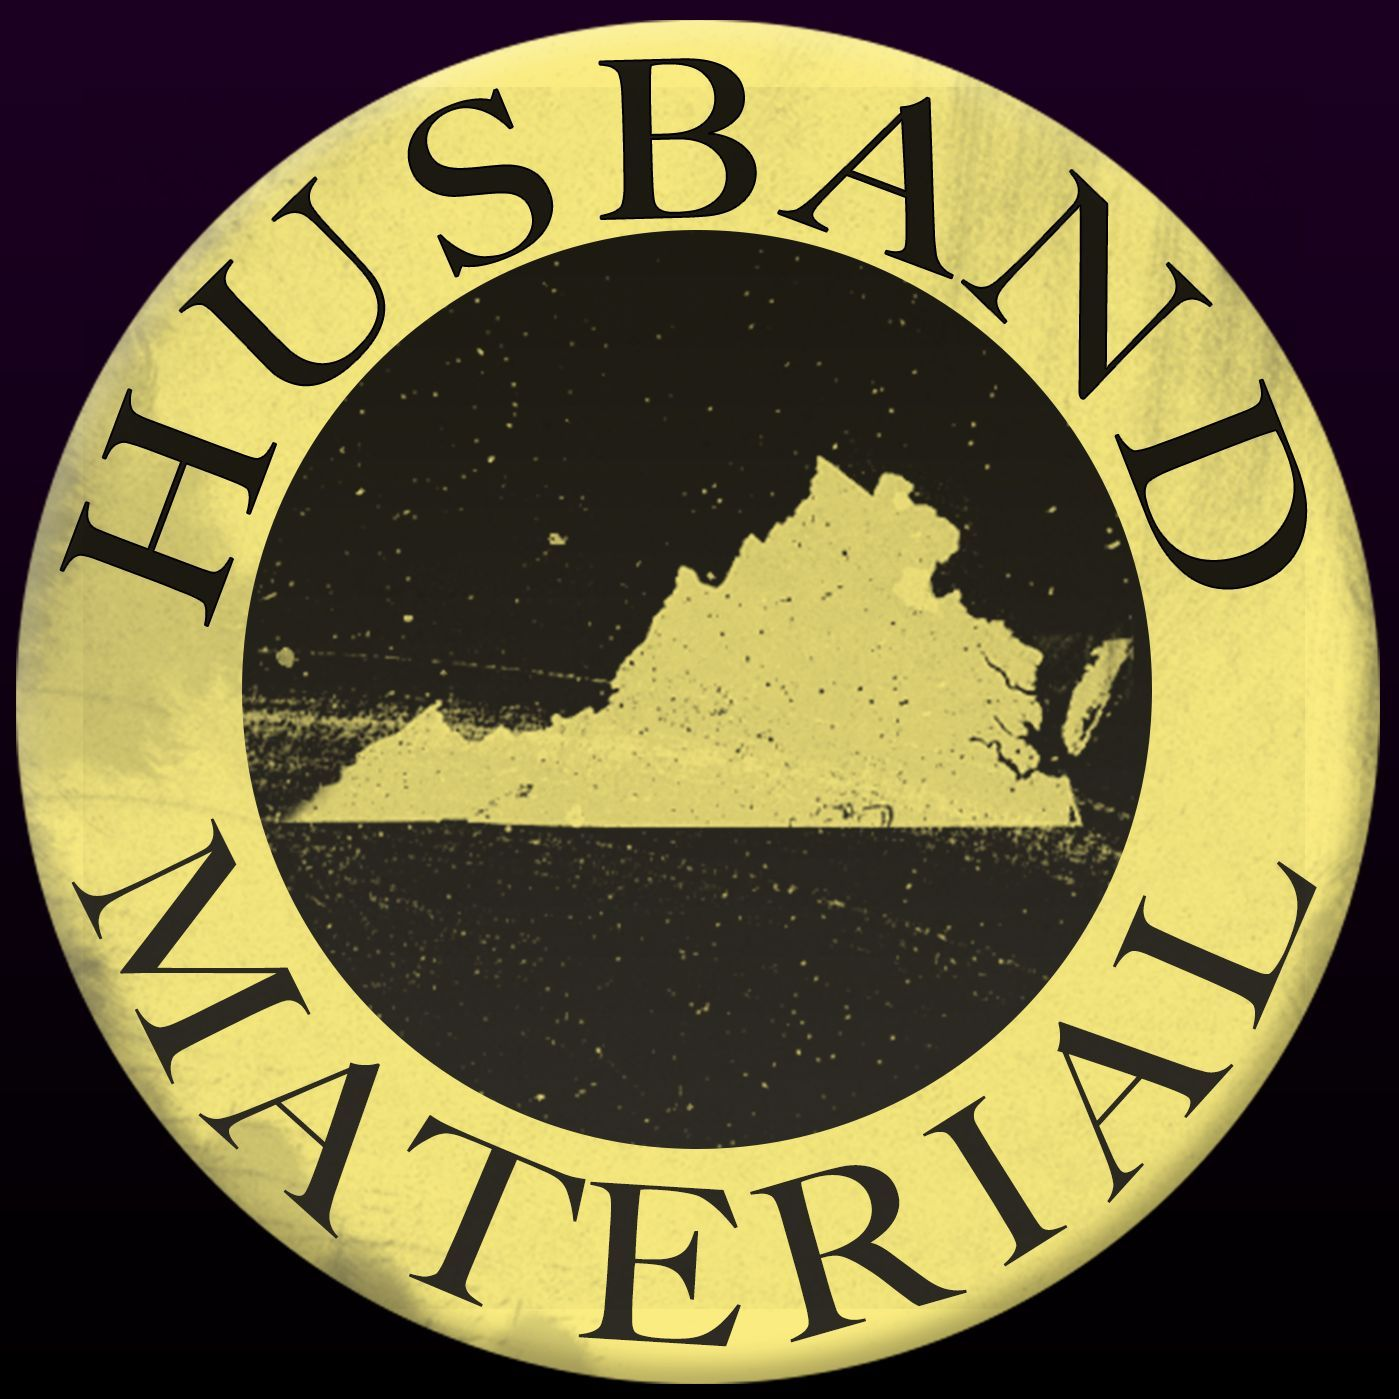 Husband Material Podcast - Ep 10